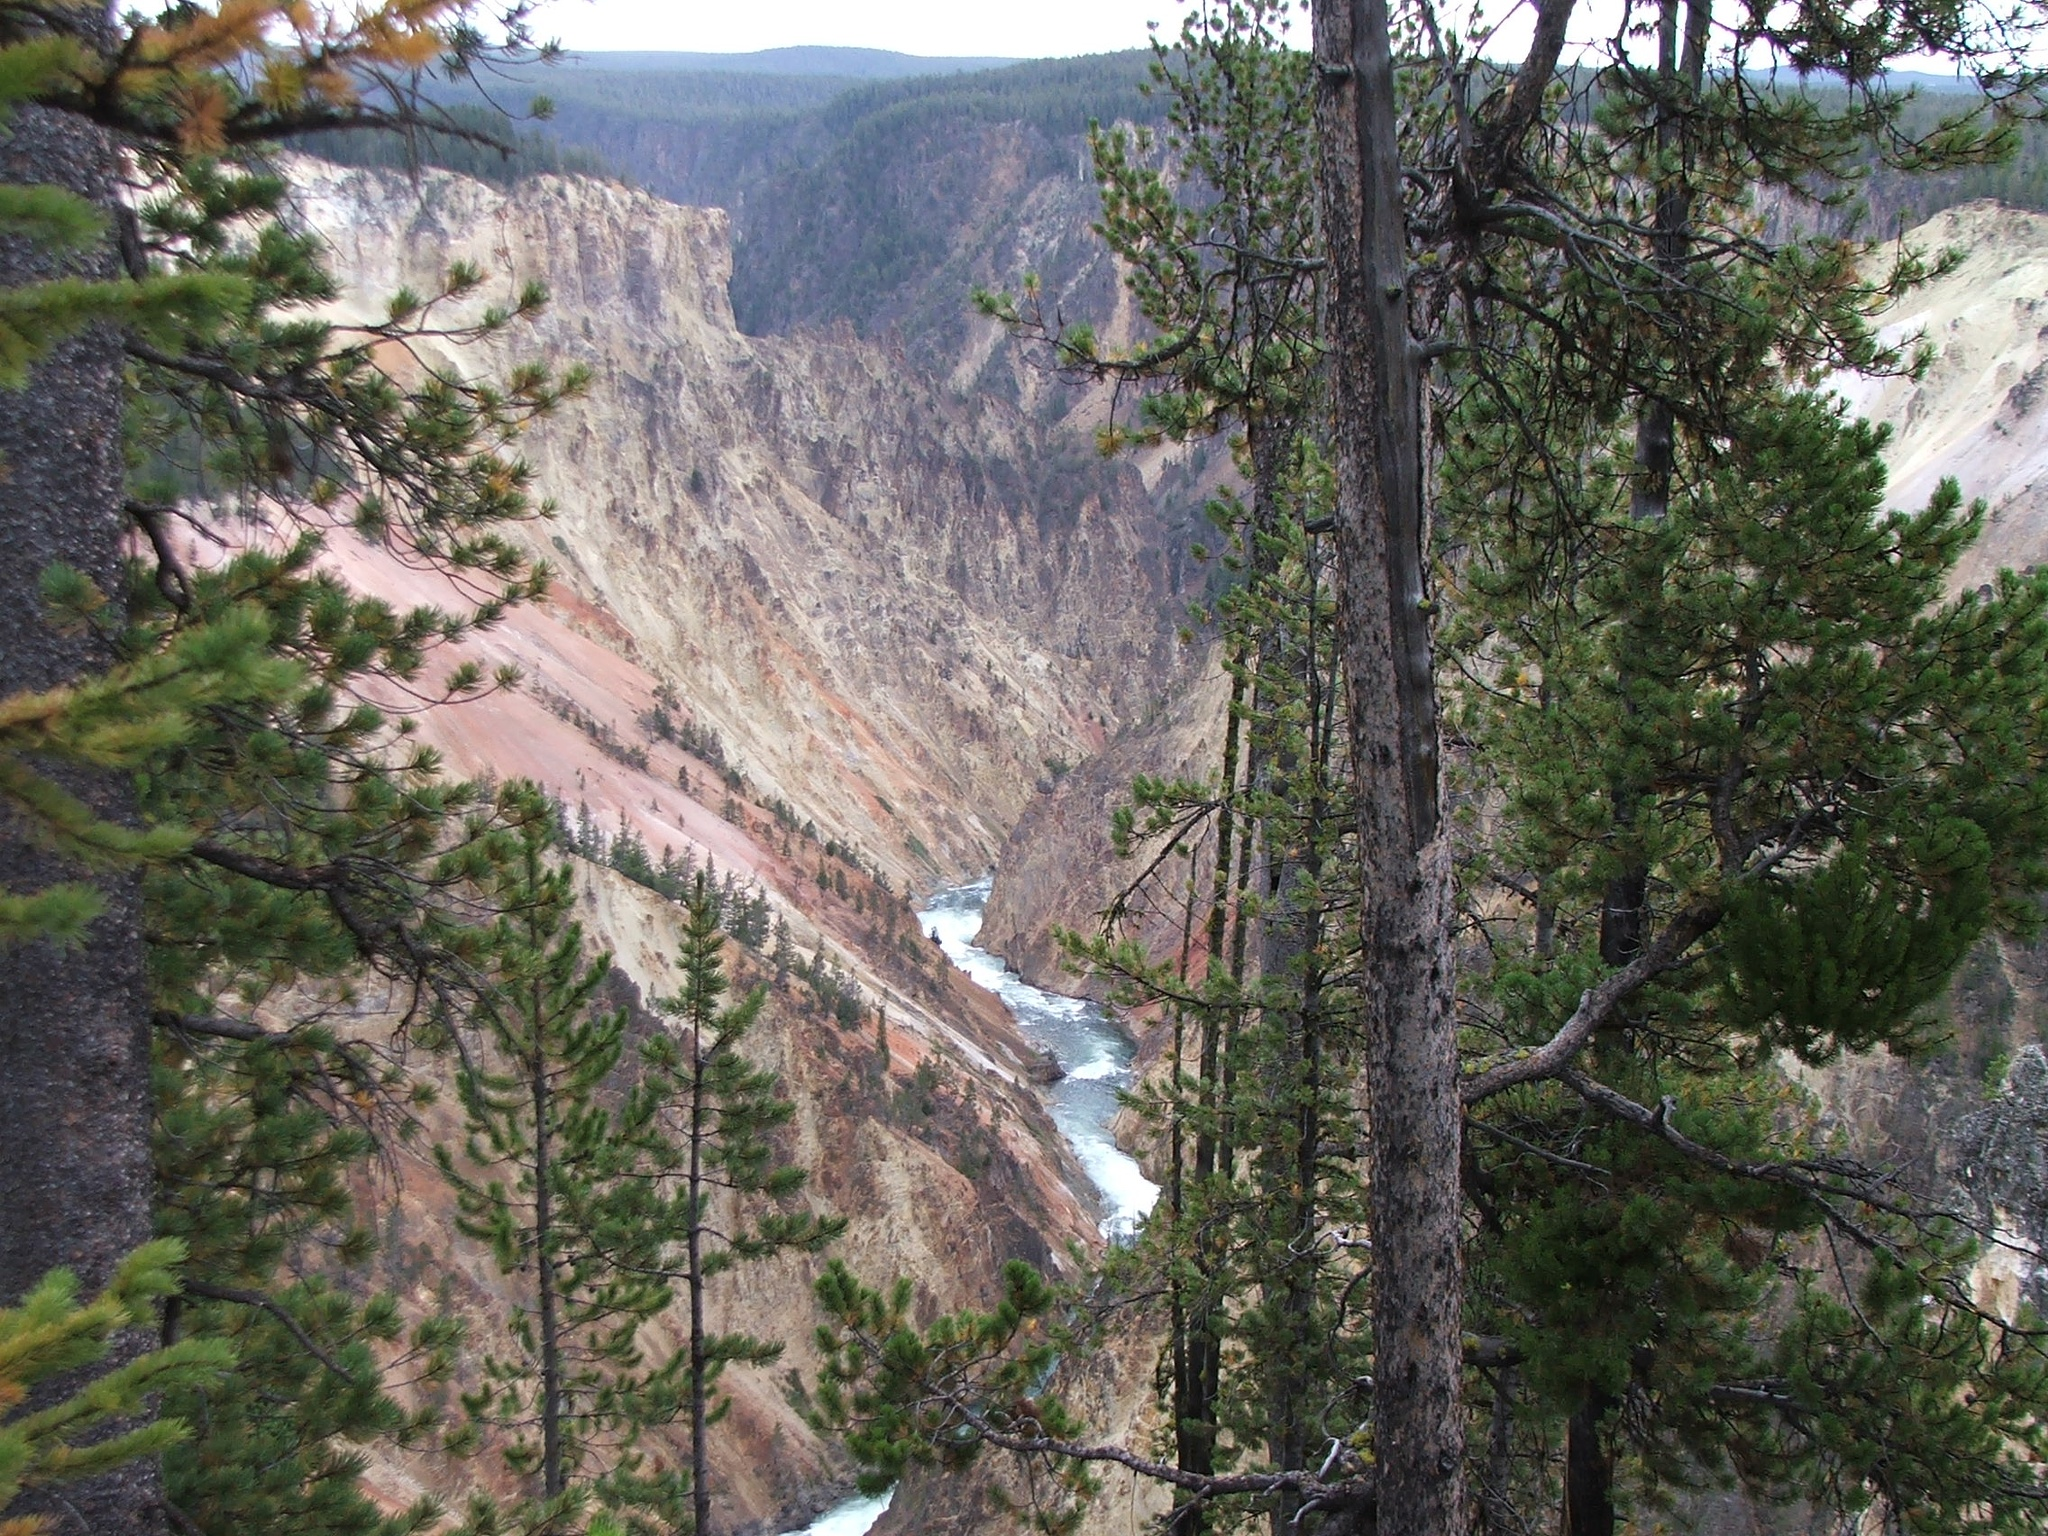 The Grand Canyon of Yellowstone National Park by steviedster